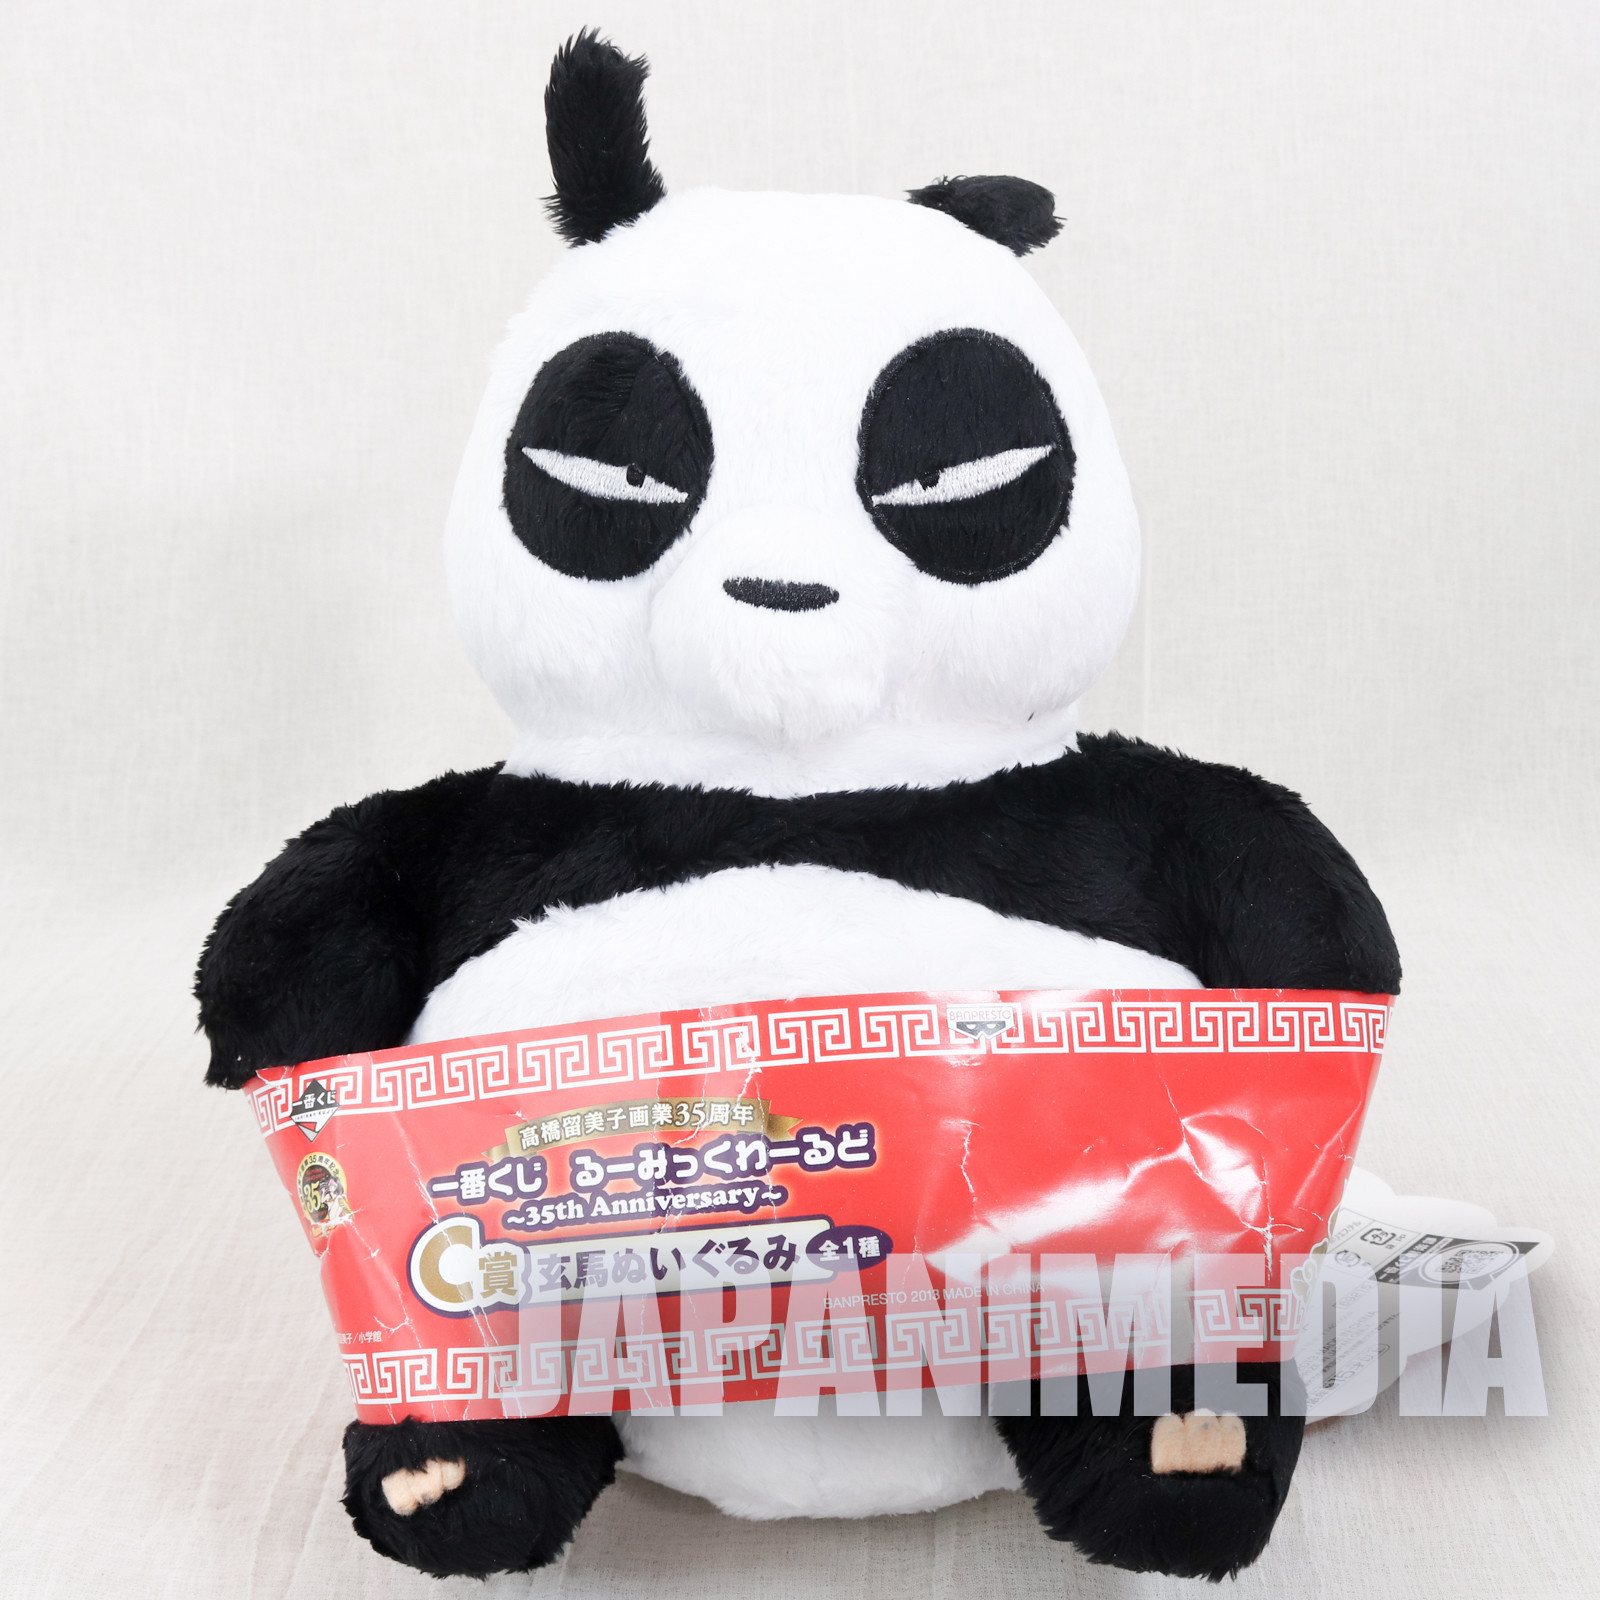 Ranma 1/2 Genma Panda Plush Doll Figure Rumic World JAPAN ANIME MANGA